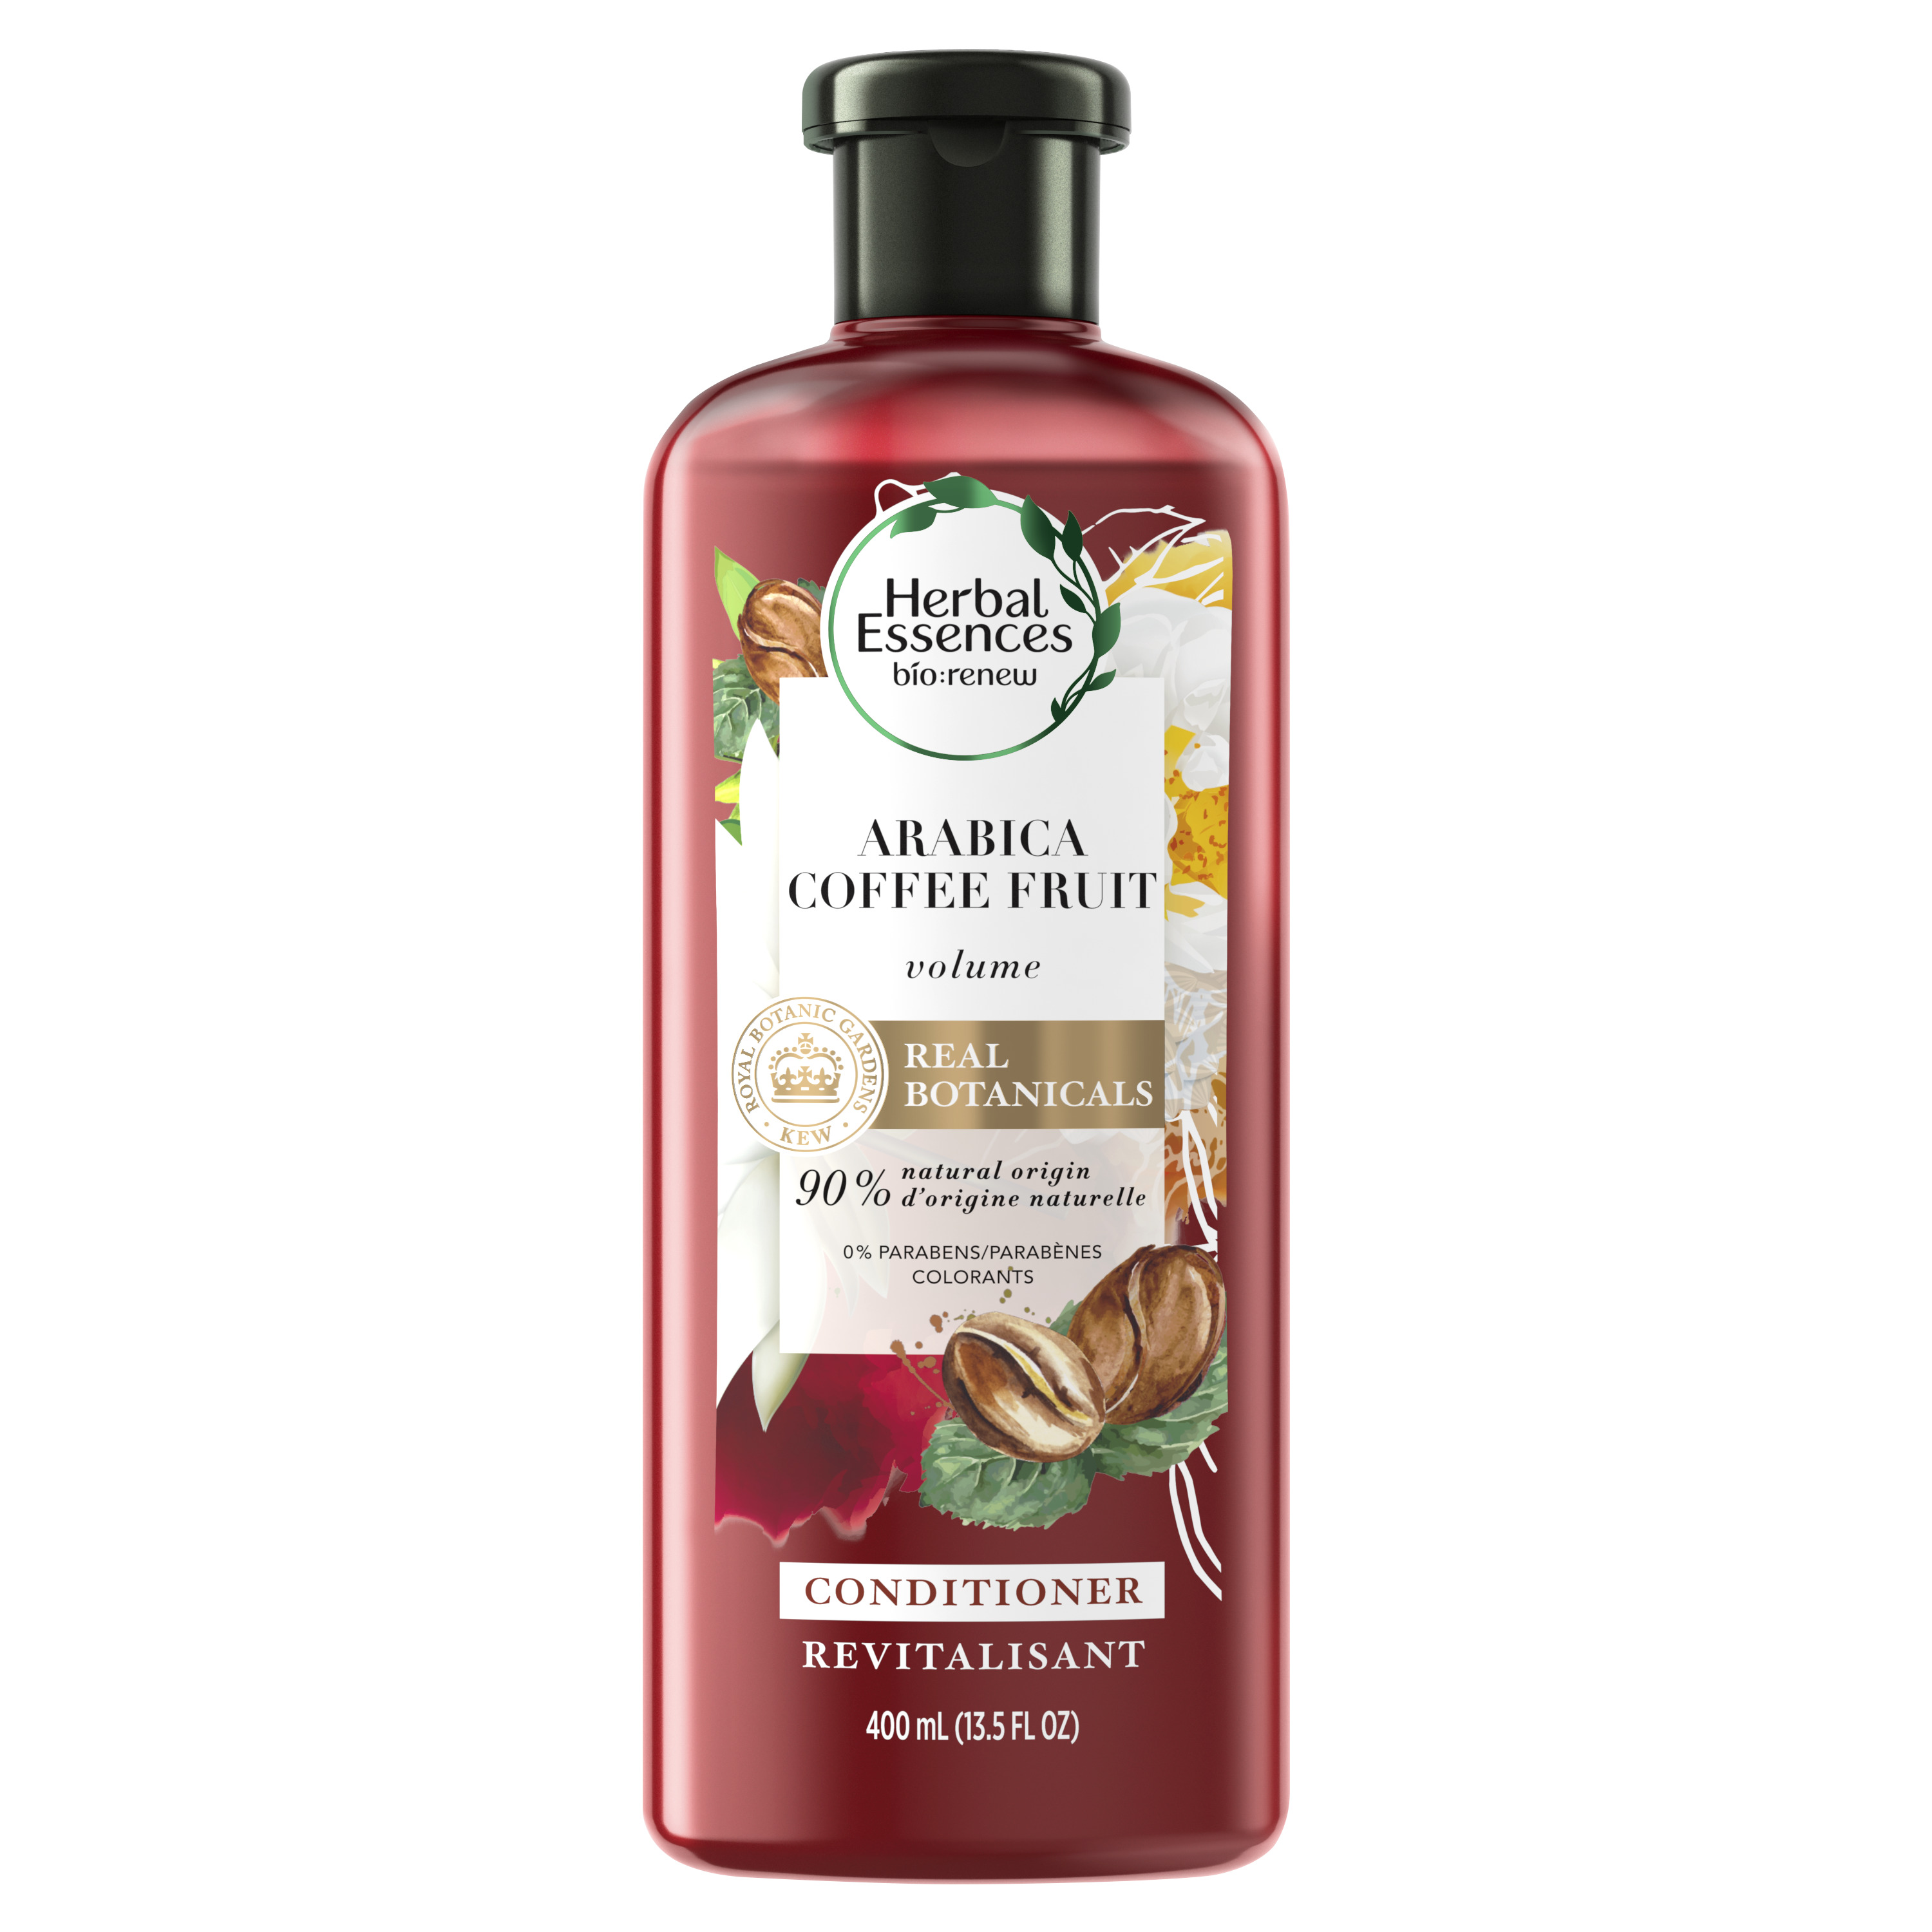 Herbal Essences bio:renew Arabica Coffee Fruit Volumizing Conditioner, 13.5 fl oz